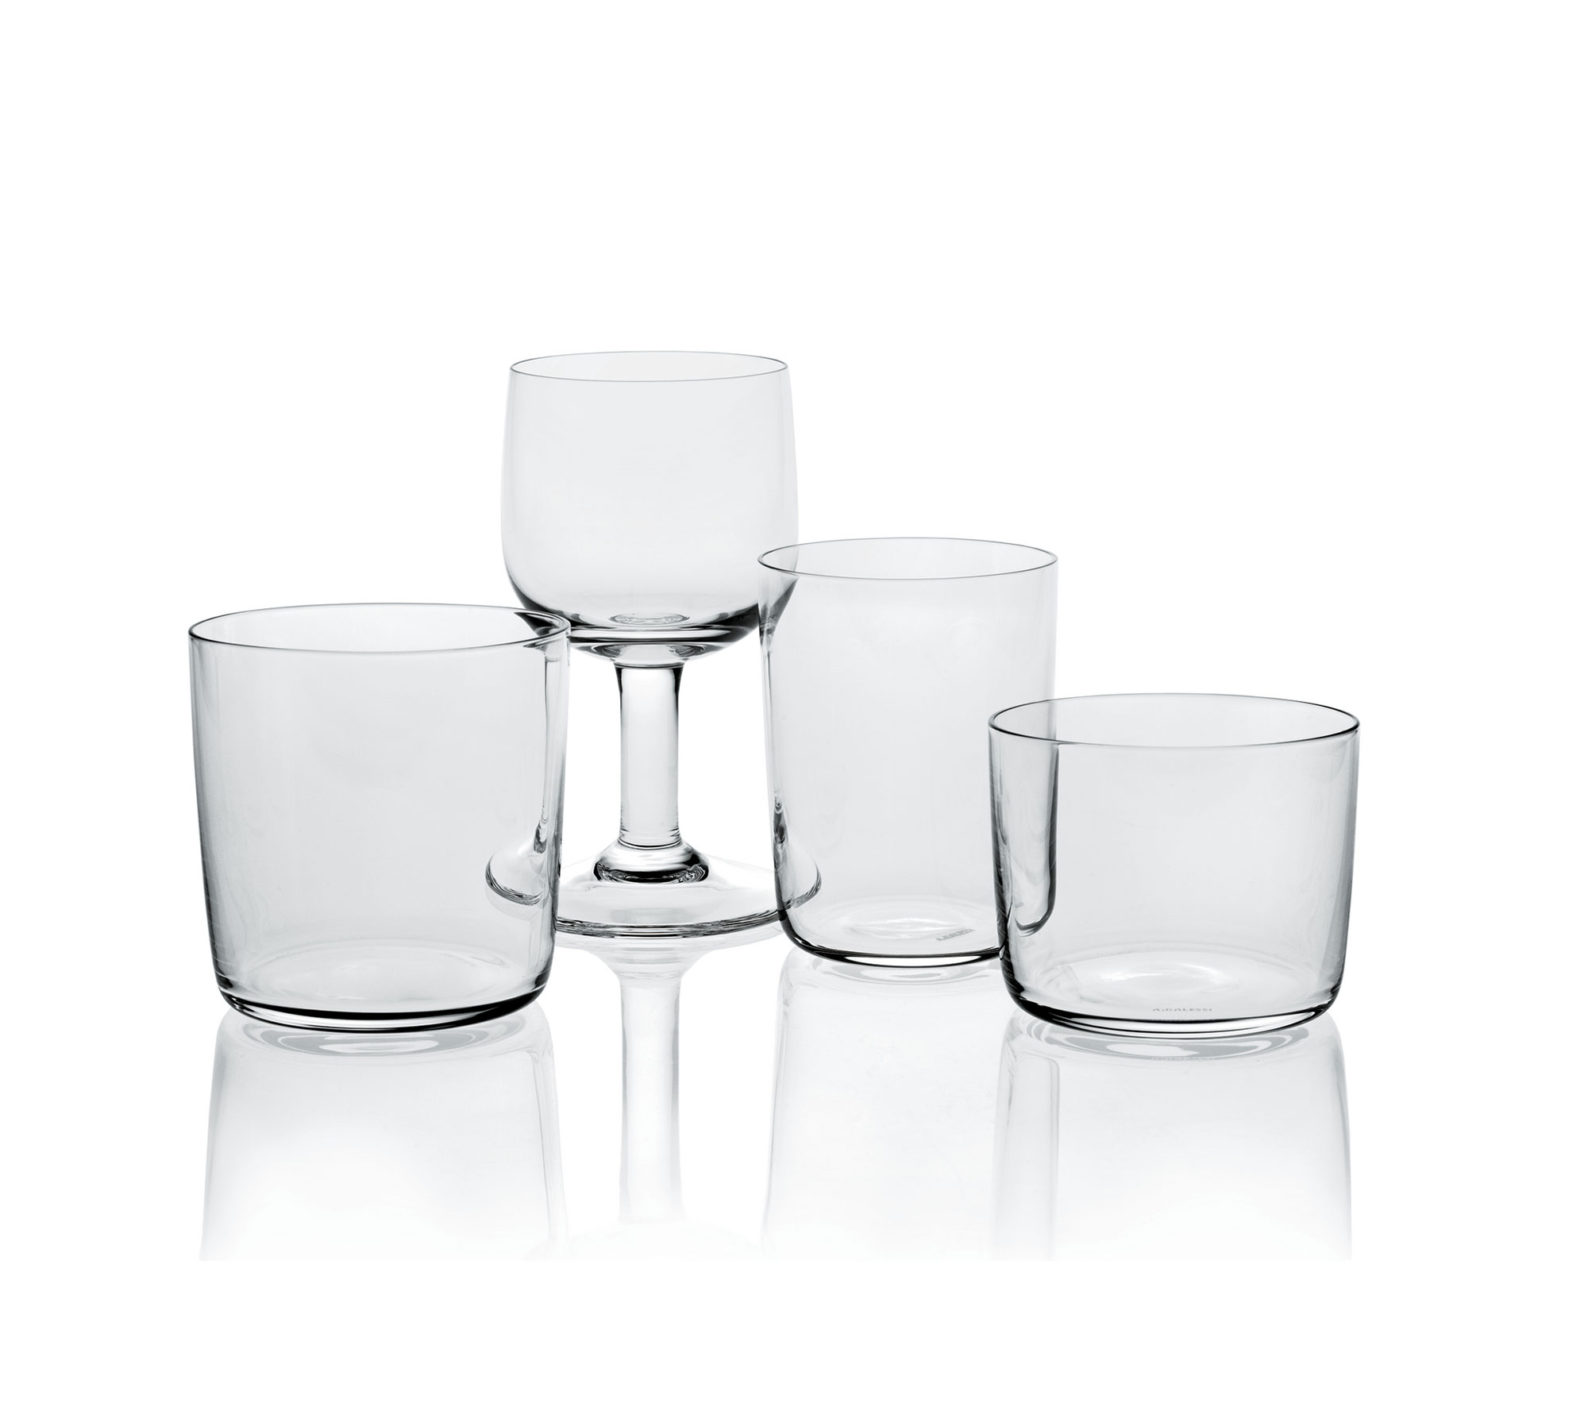 Four clear glasses. Three tumbler-shaped glasses of different sizes and one stemmed glass.